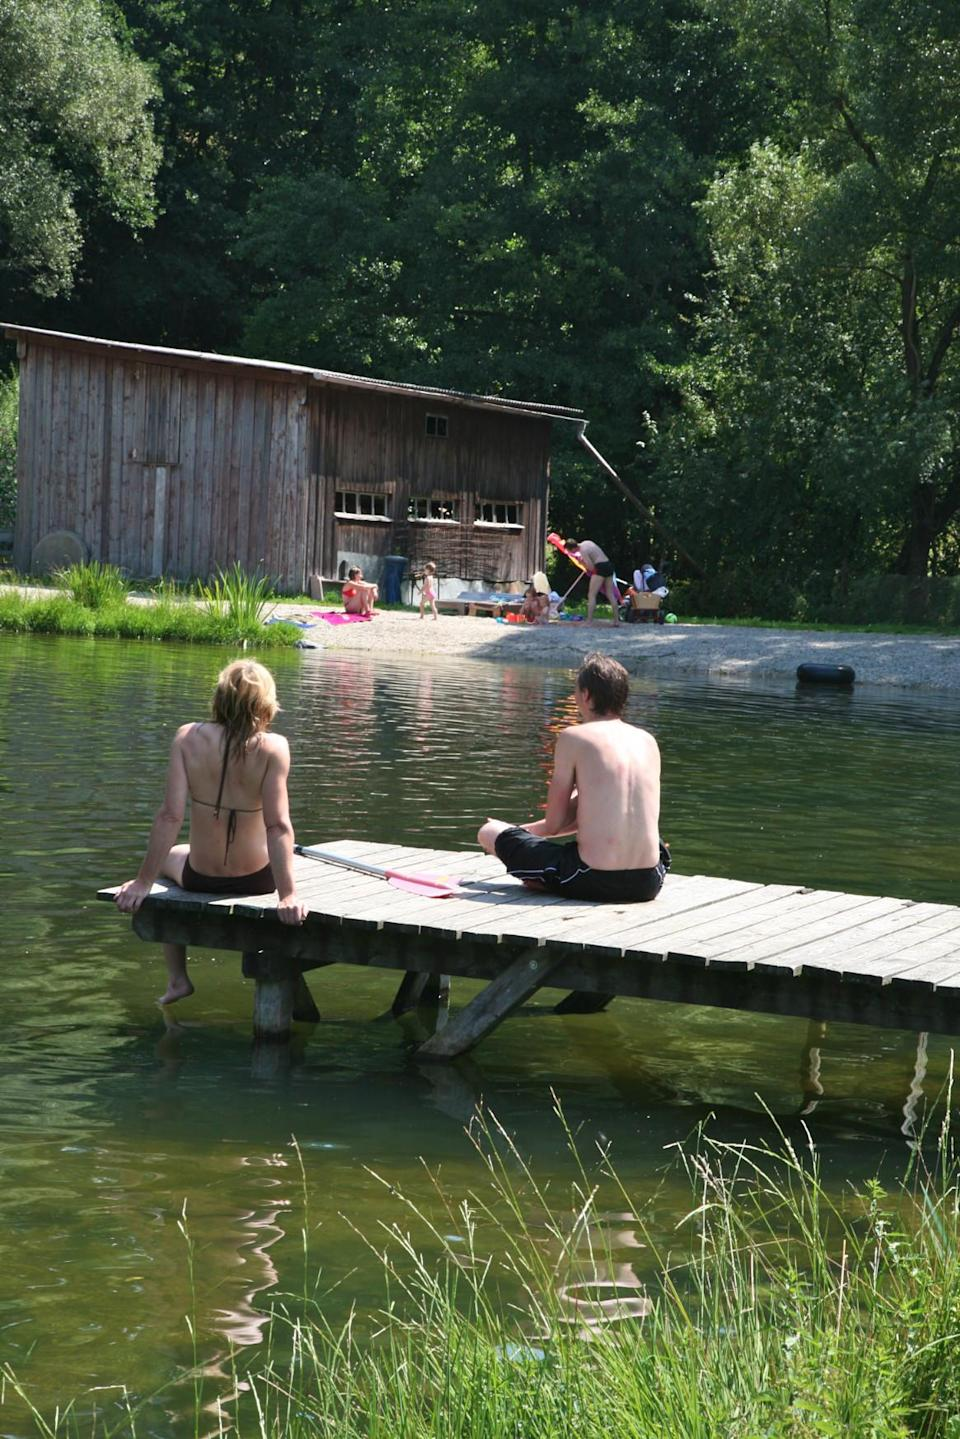 """<p><span>Set in the heart of the Bavarian forest, </span><a href=""""https://coolcamping.com/campsites/europe/germany/bavaria/east-bavaria/1167-adventure-camp-schnitzmuhle"""" rel=""""nofollow noopener"""" target=""""_blank"""" data-ylk=""""slk:this campsite"""" class=""""link rapid-noclick-resp""""><span>this campsite</span></a><span> is surrounded by natural beauty. And yet it has superb facilities including a shower block, kiosk, onsite bar, WiFi and a playground. Little ones will love playing by the river (which runs slow and safe through the campsite), while parents can enjoy the hotel, spa and restaurant next door. A tent and two people from €18.50 (£16). [Photo: Cool Camping]</span> </p>"""